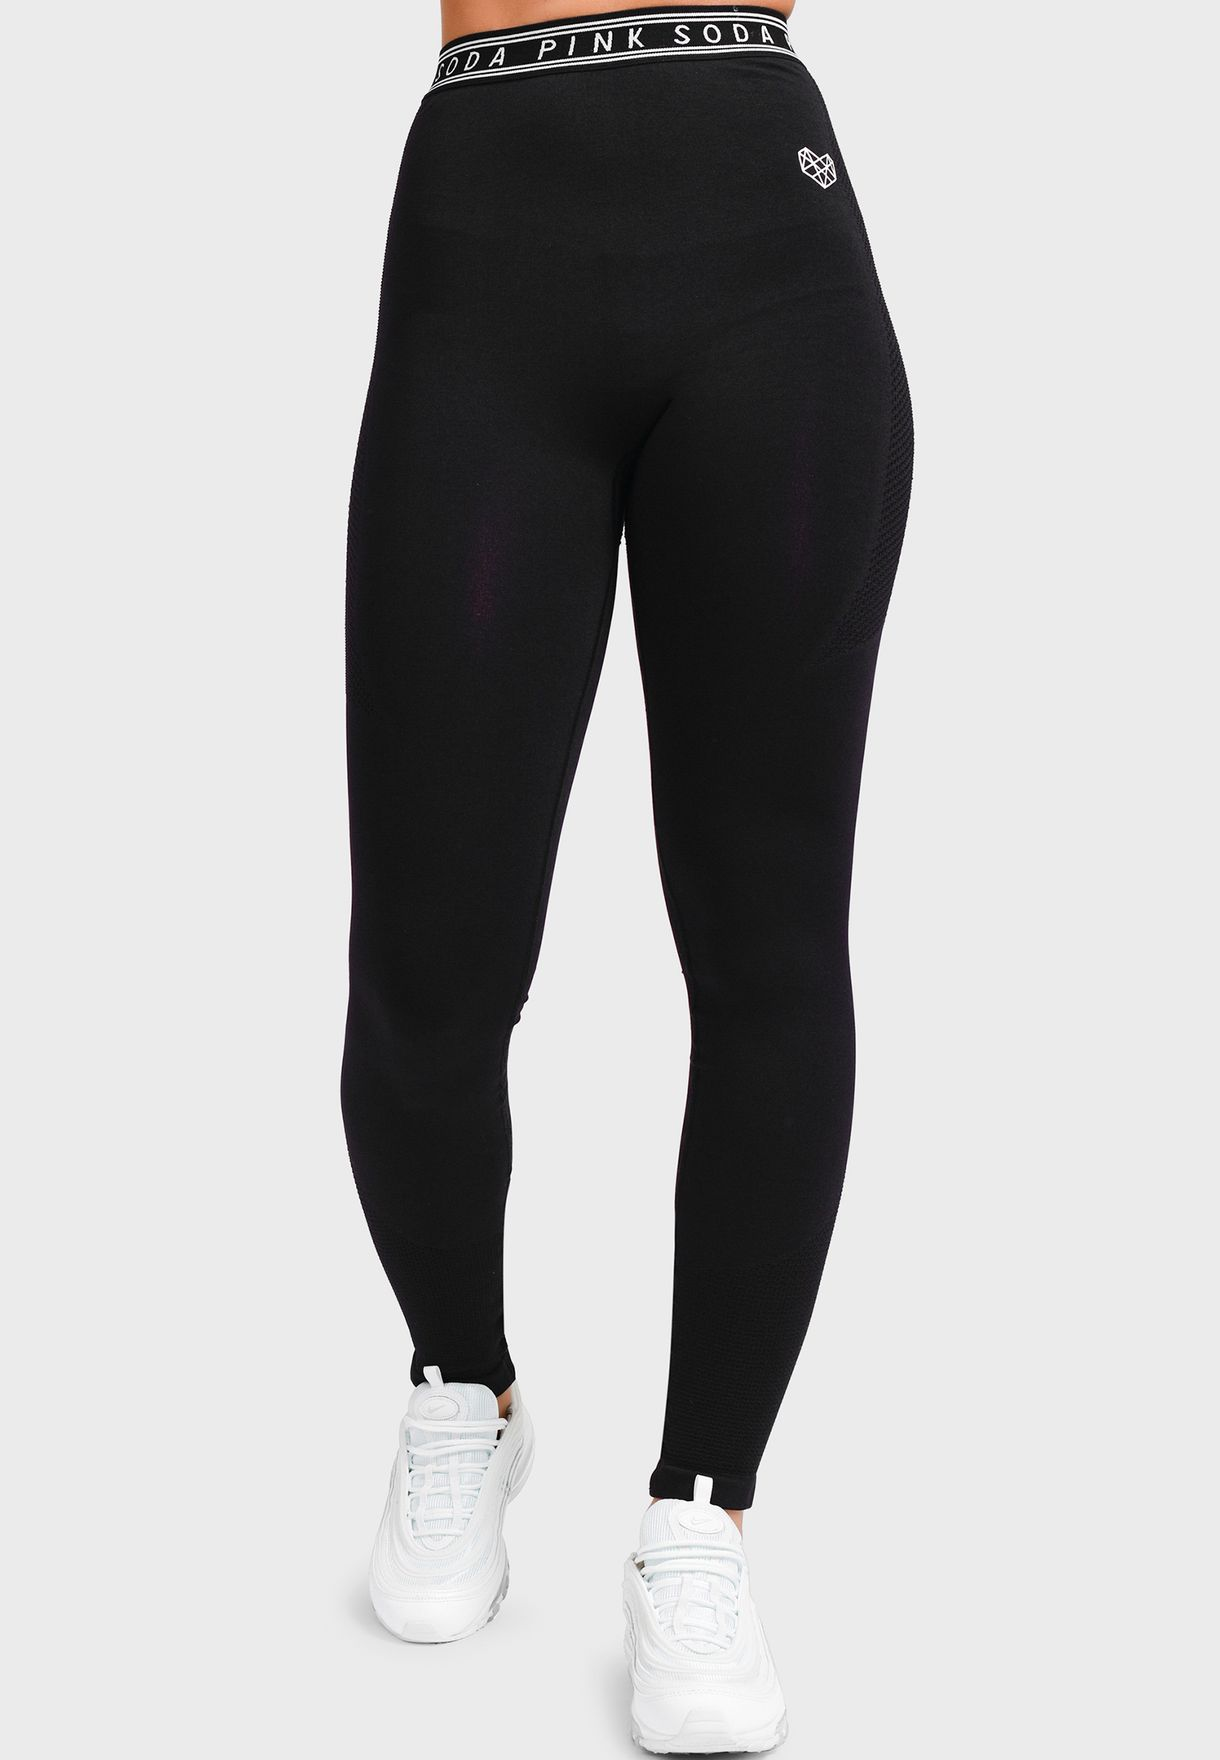 Tidal Seamless Tights